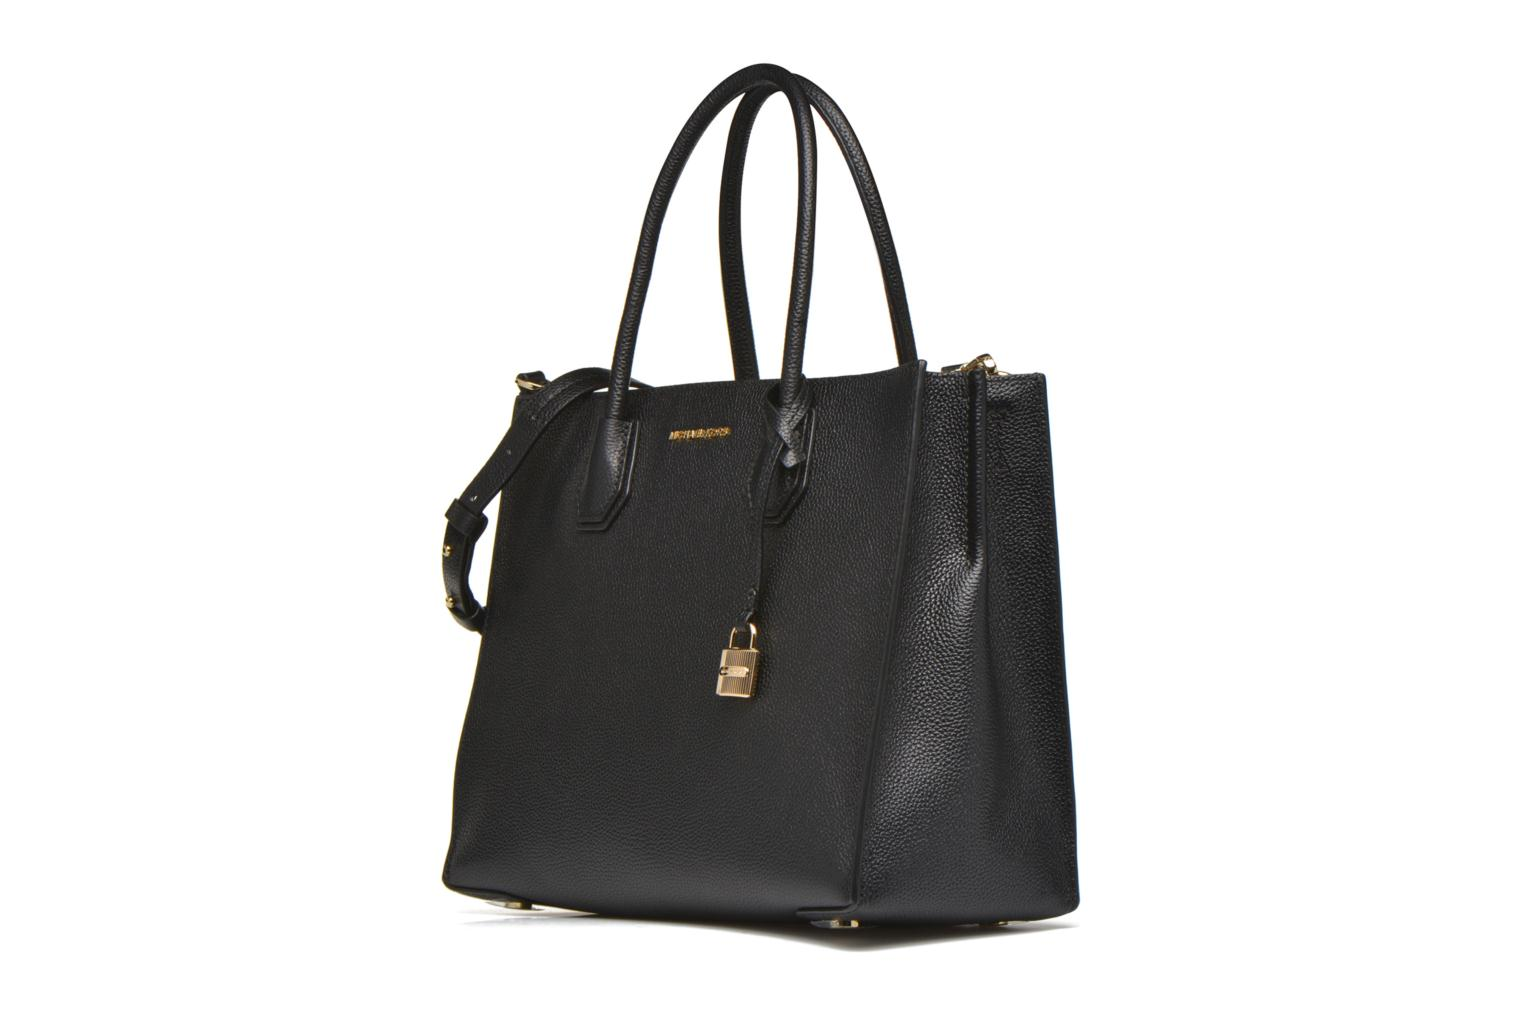 MERCER LG Convertible Satchel Black